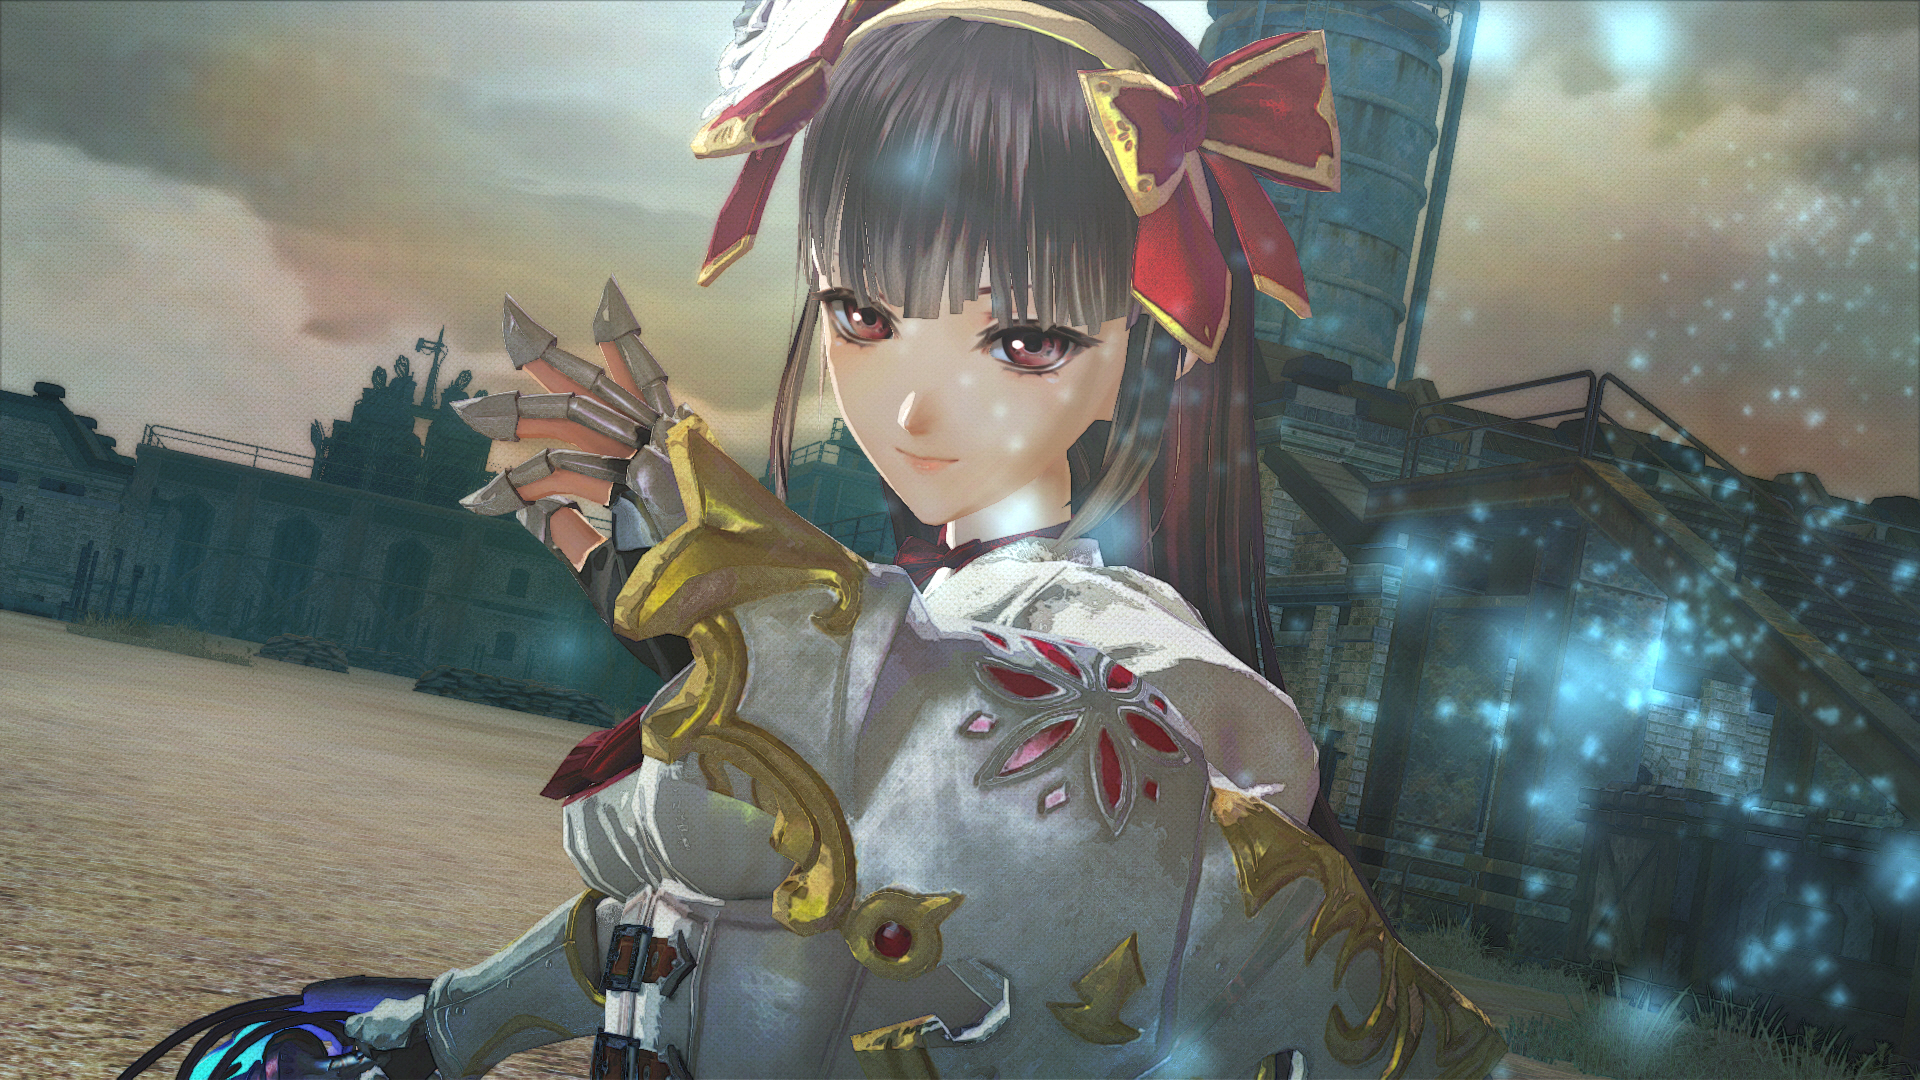 Valkyria Revolution arriva in occidente: data, trailer ed edizione limitata